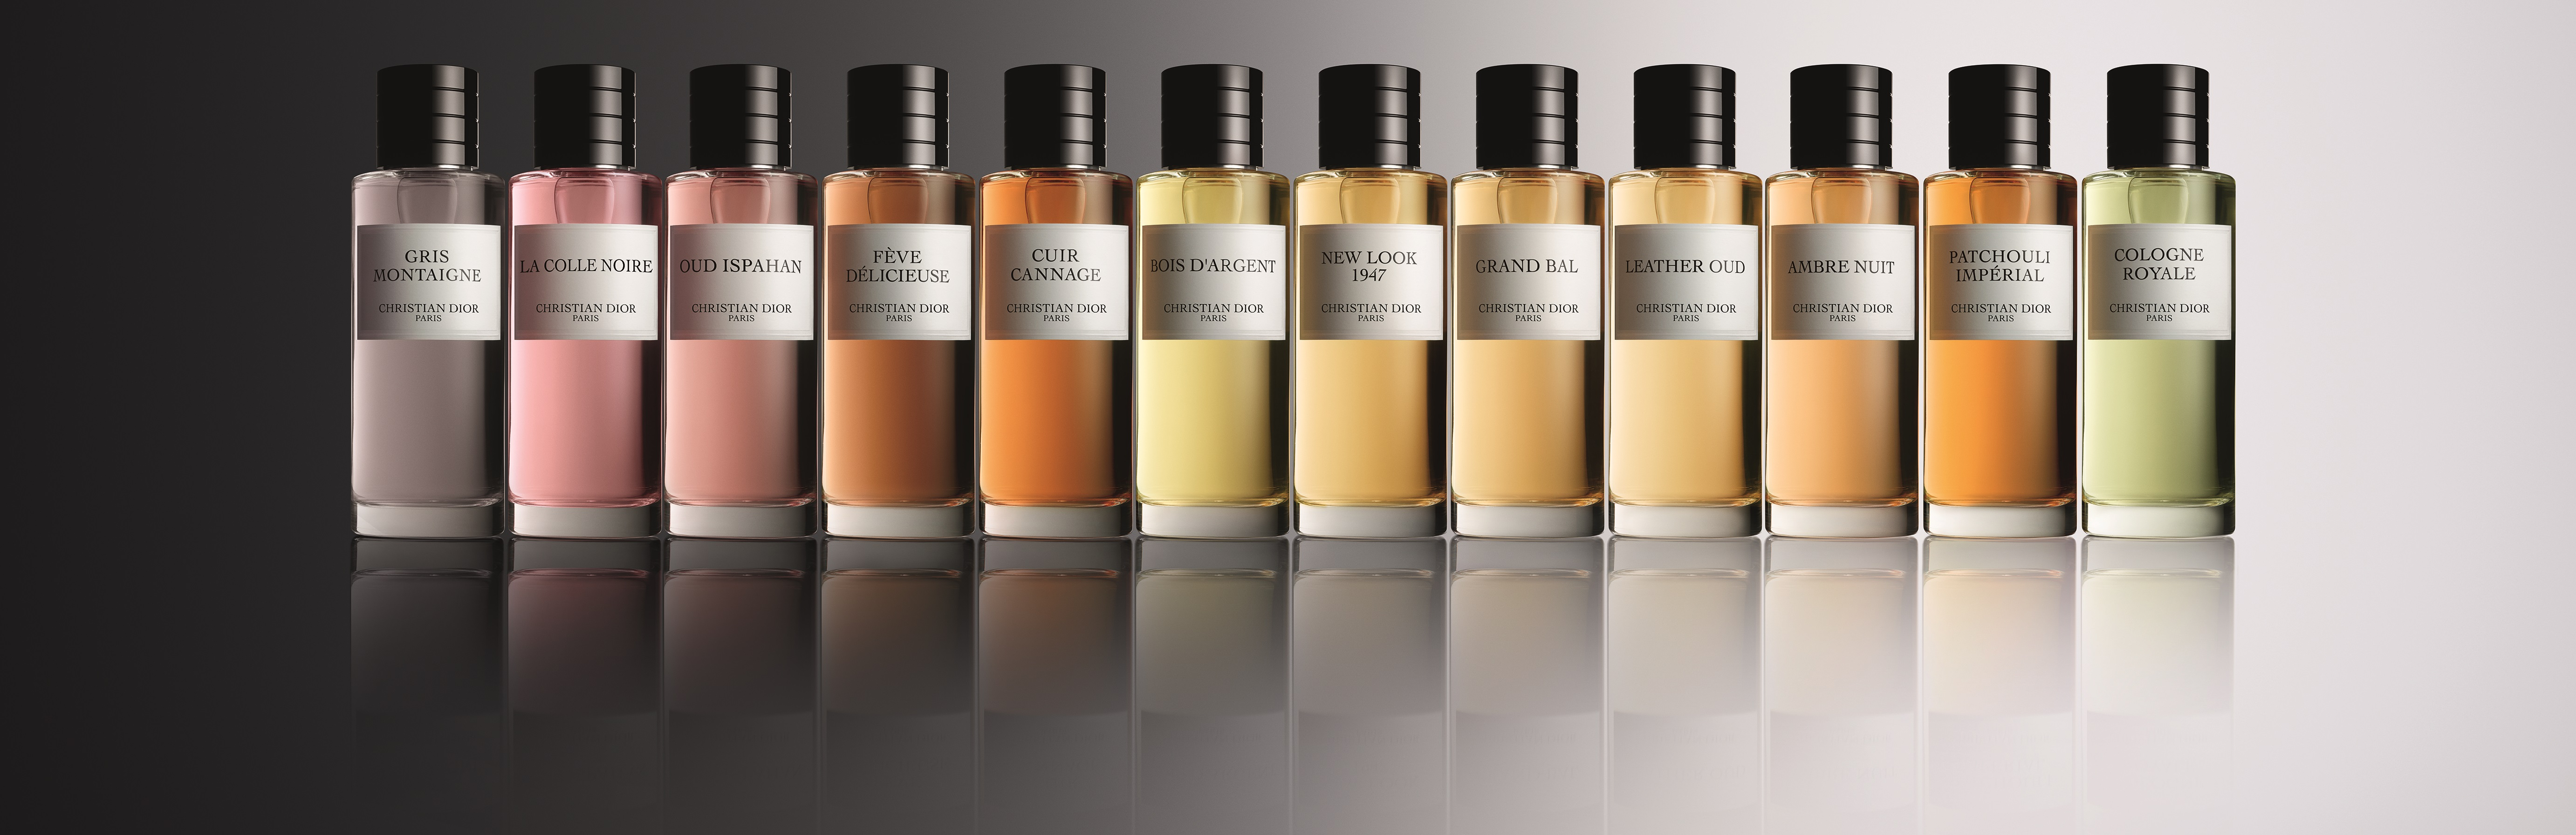 La Colle Noire Dior the most enchanting stories about monsieur dior at the